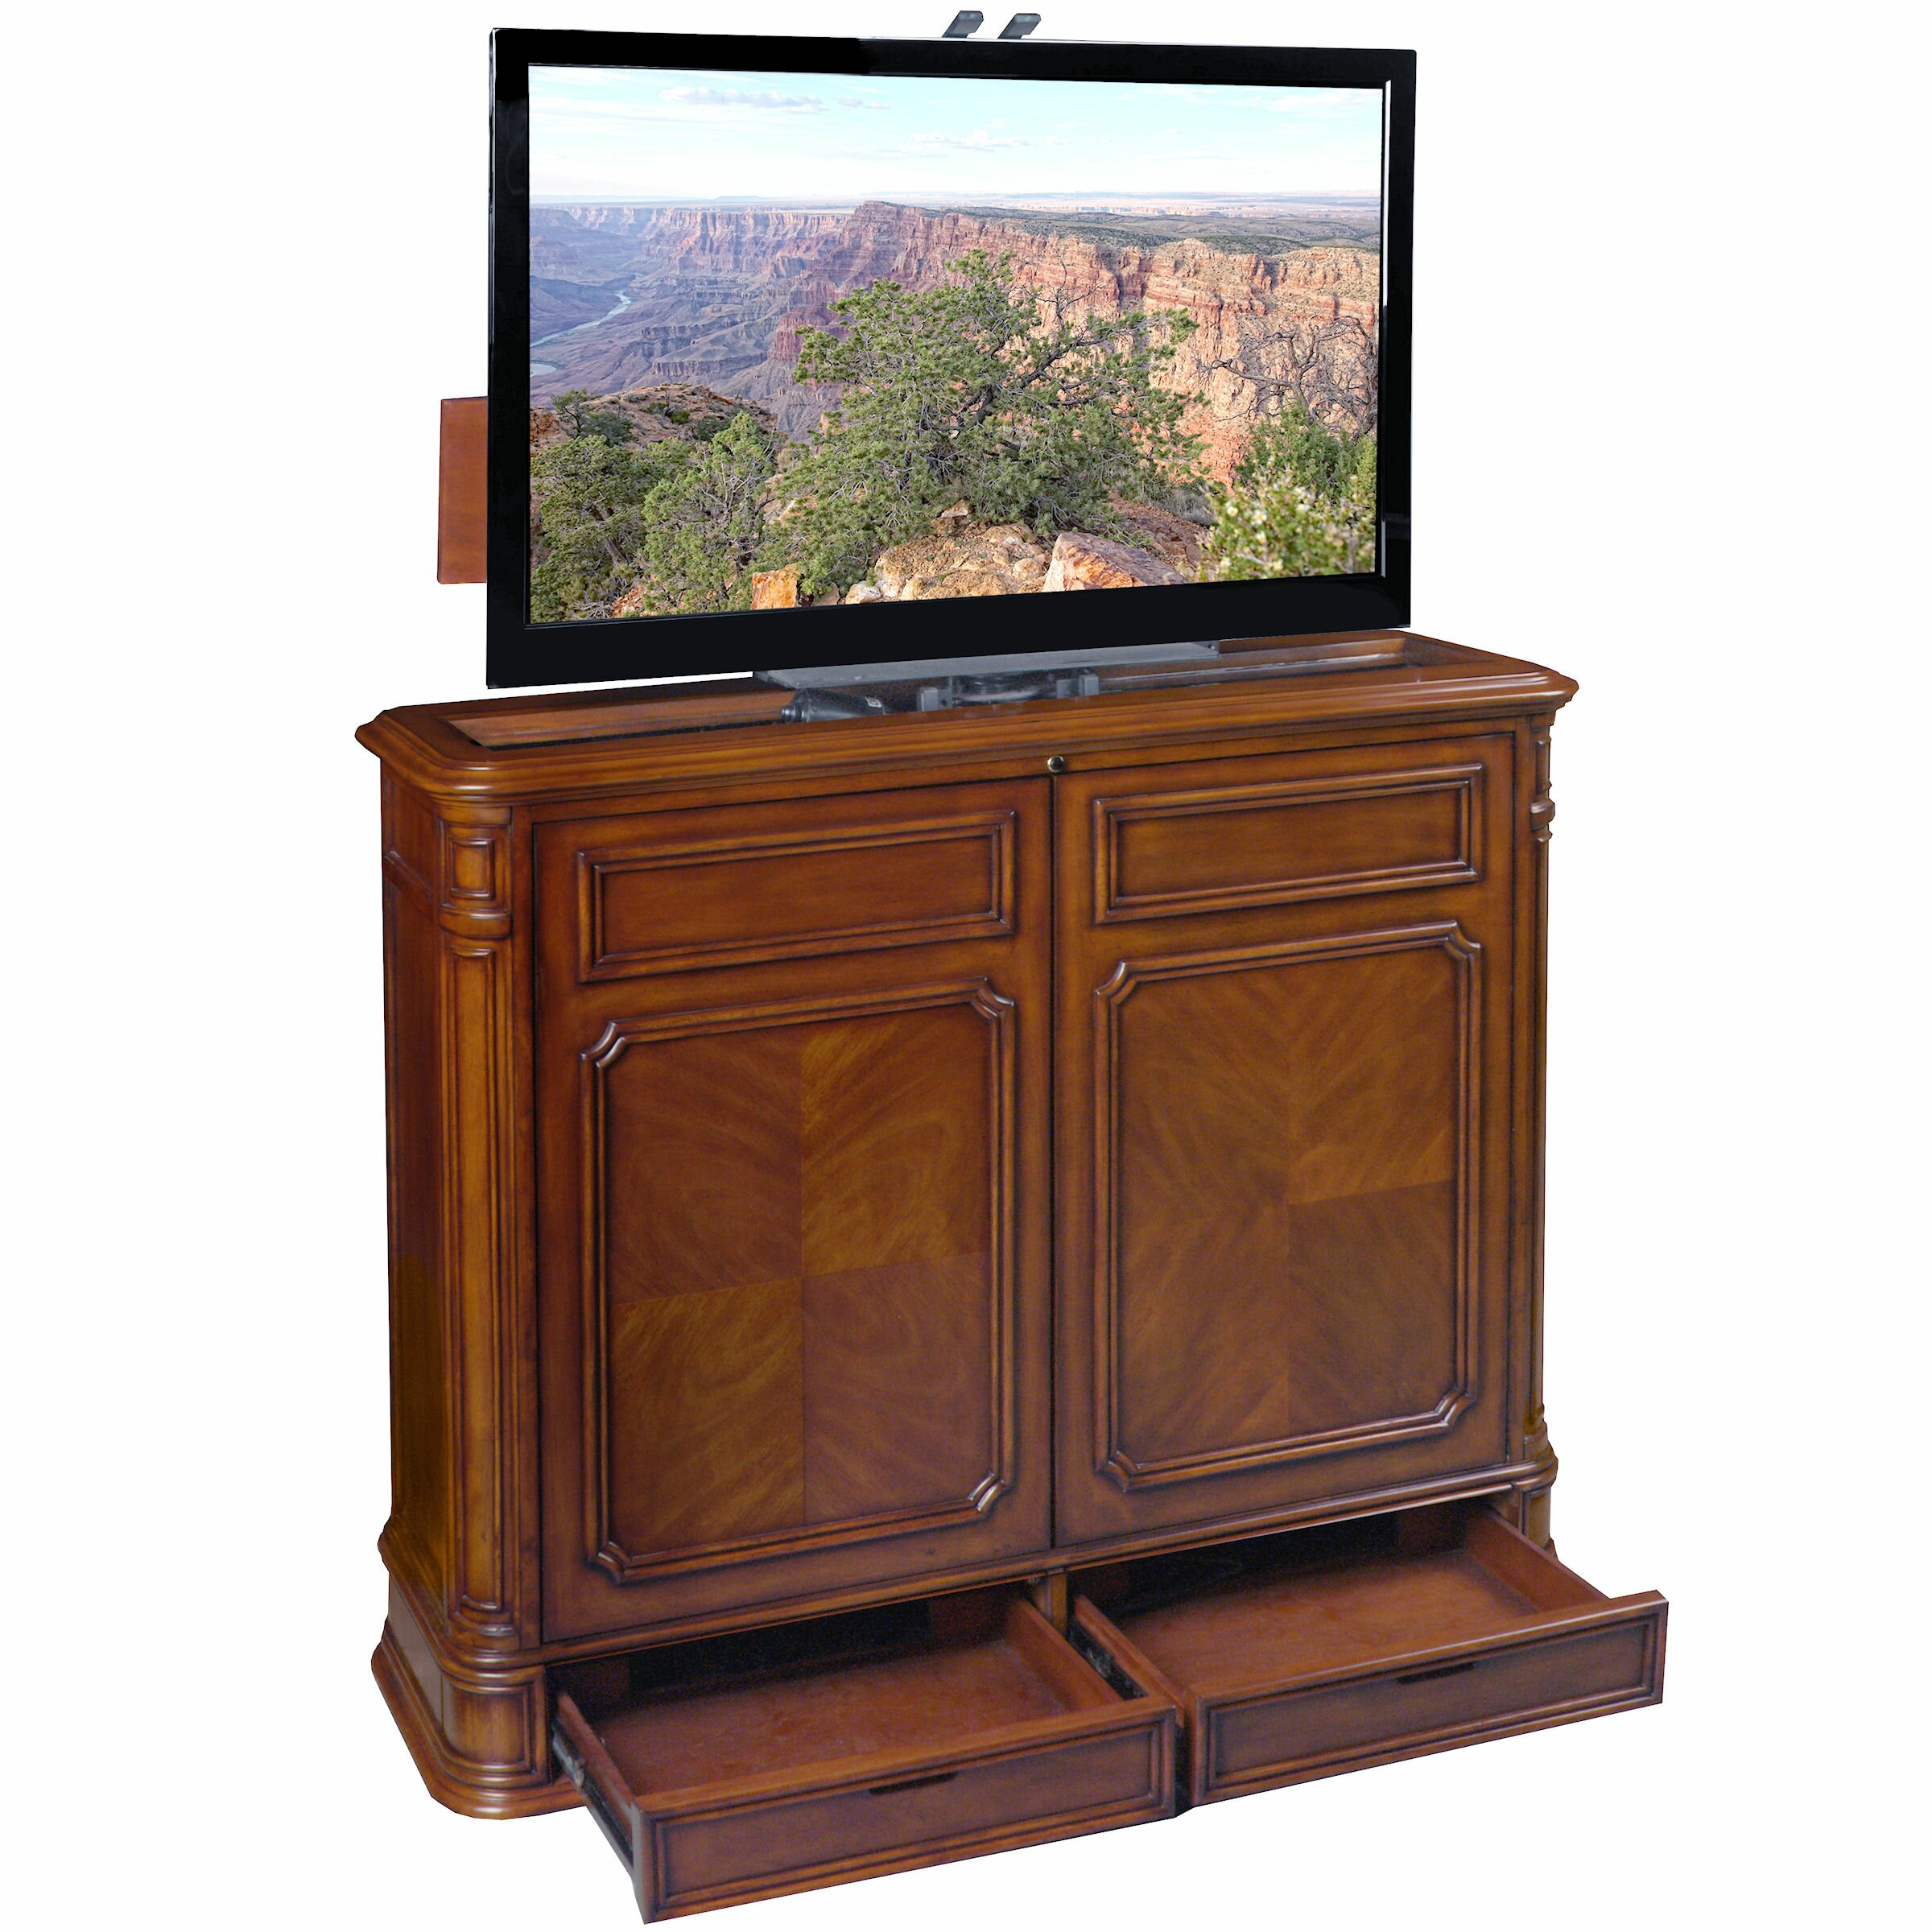 Tvliftcabinet Inc Crystal Pointe Swivel Lift Tv Stand